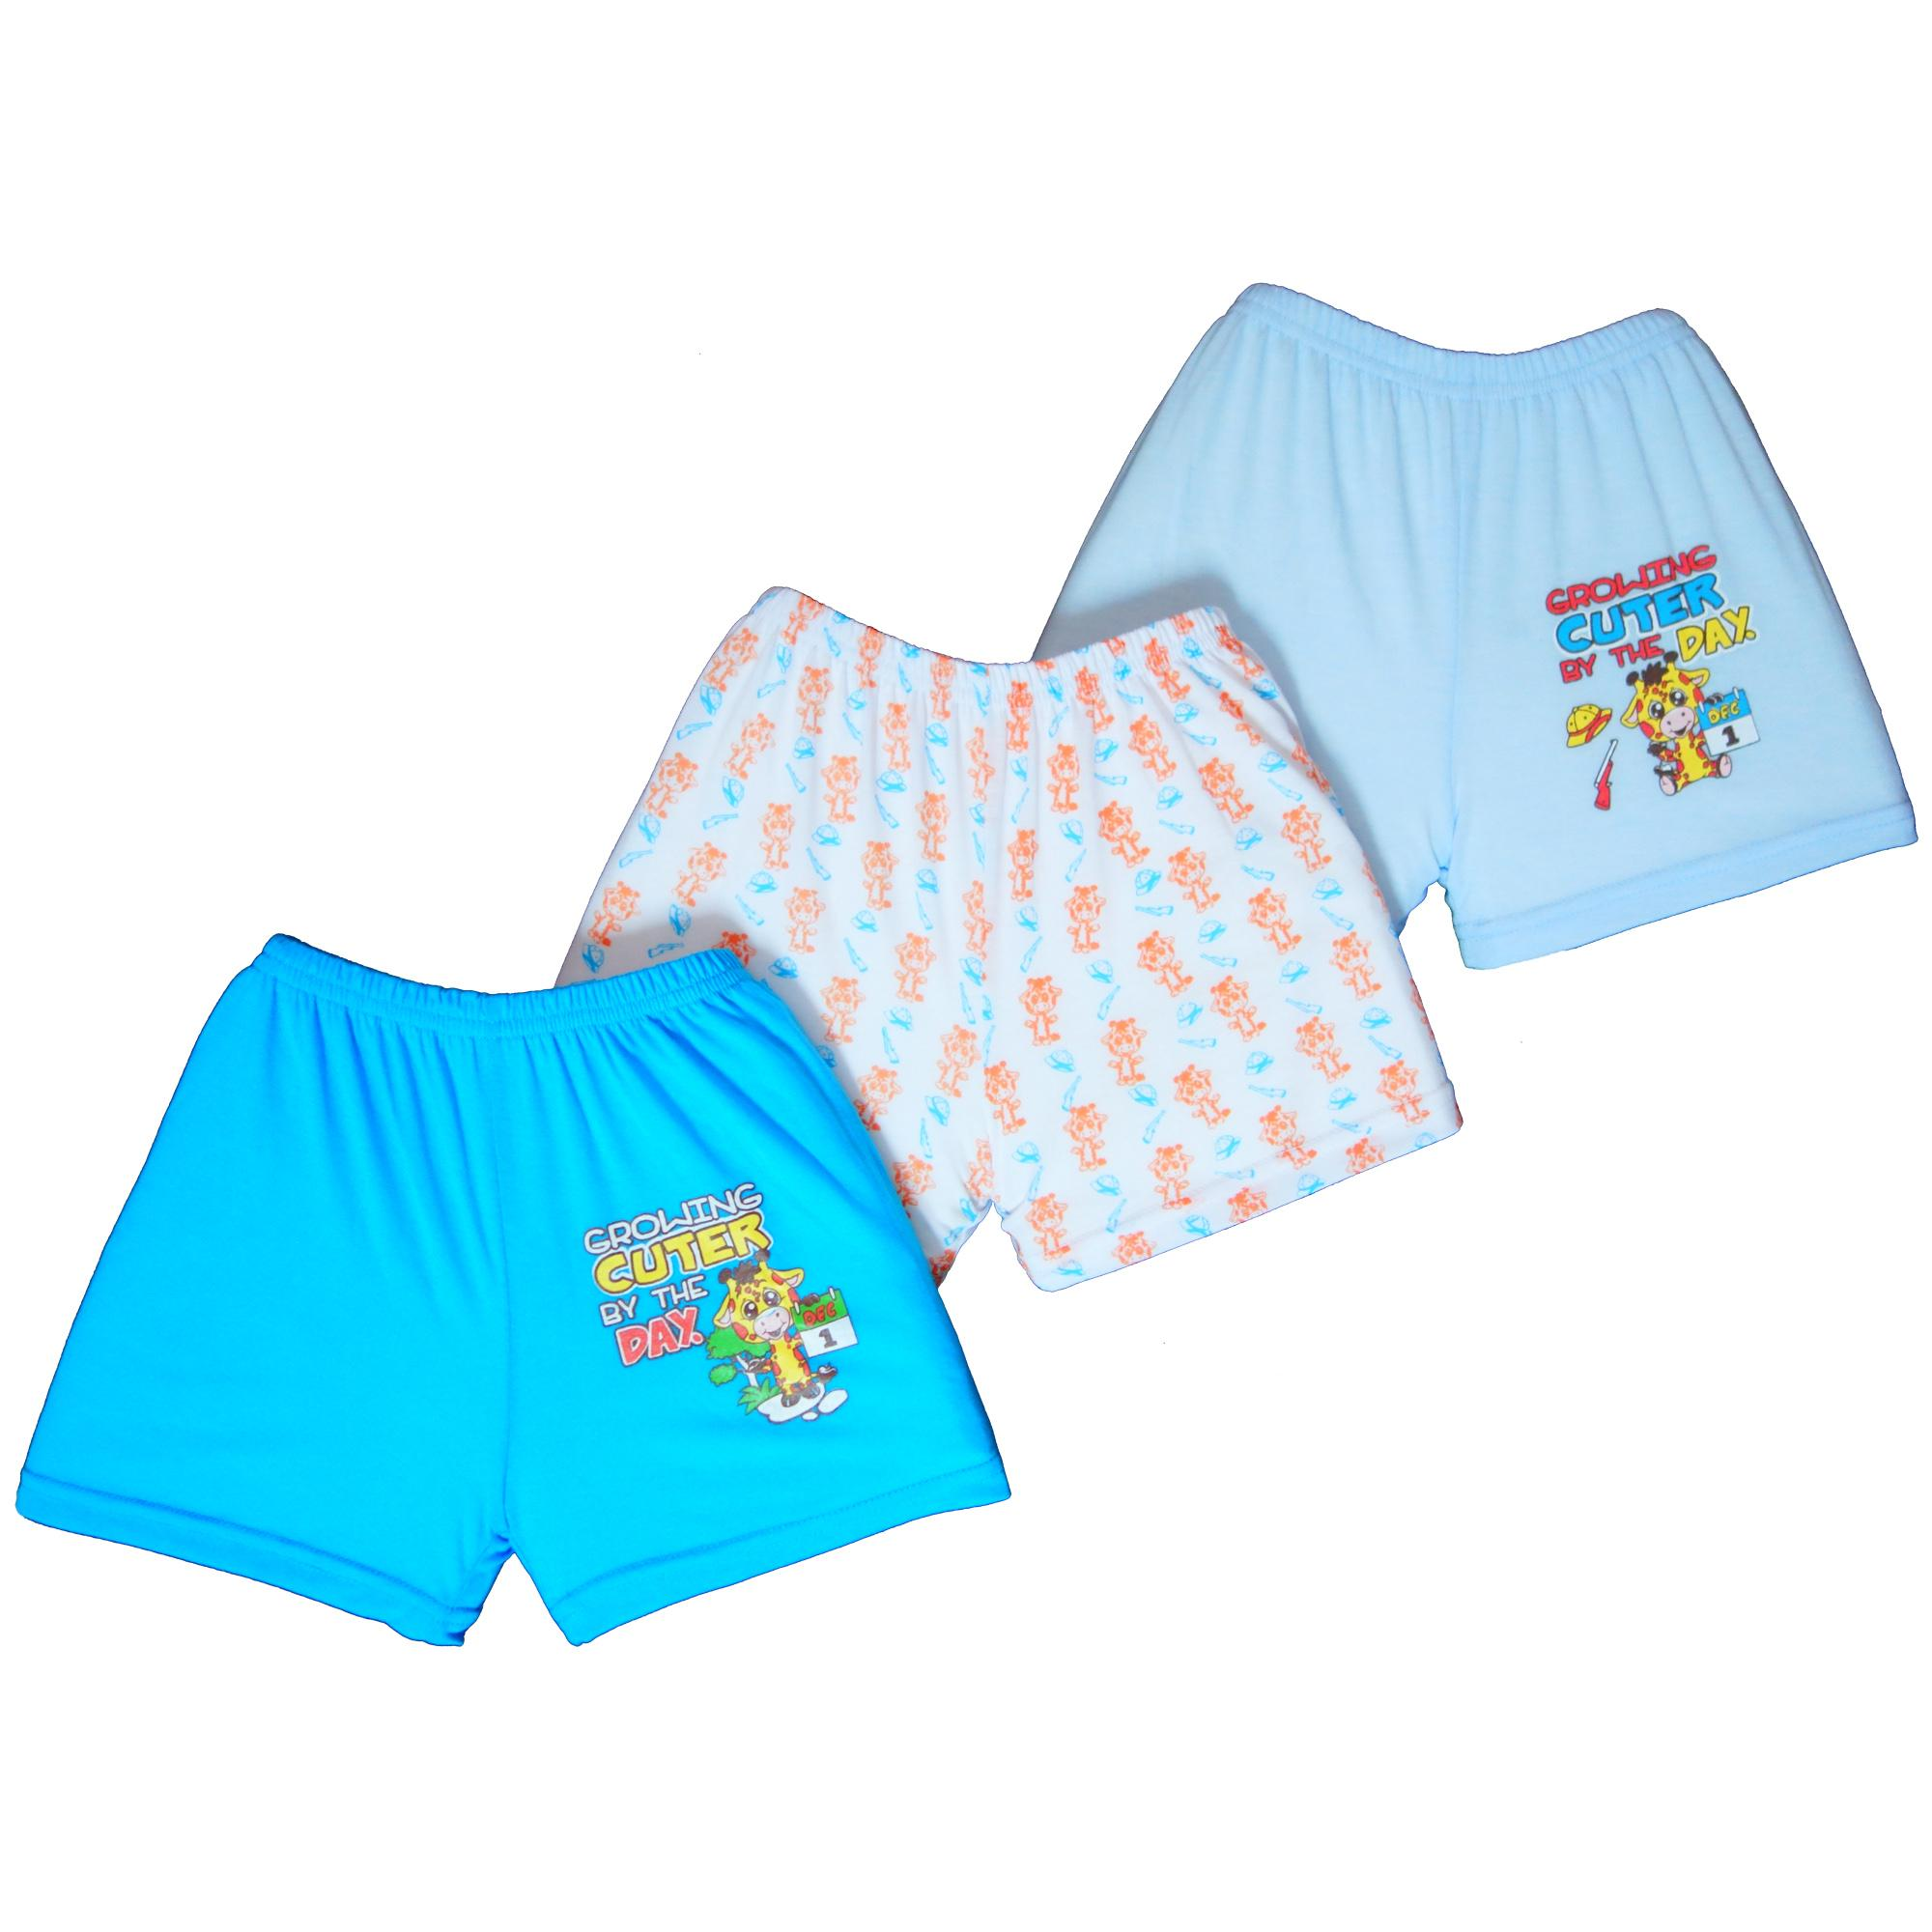 Froshie 3-Piece Baby Cotton Shorts (growing Cuter By The Day) By Froshie.